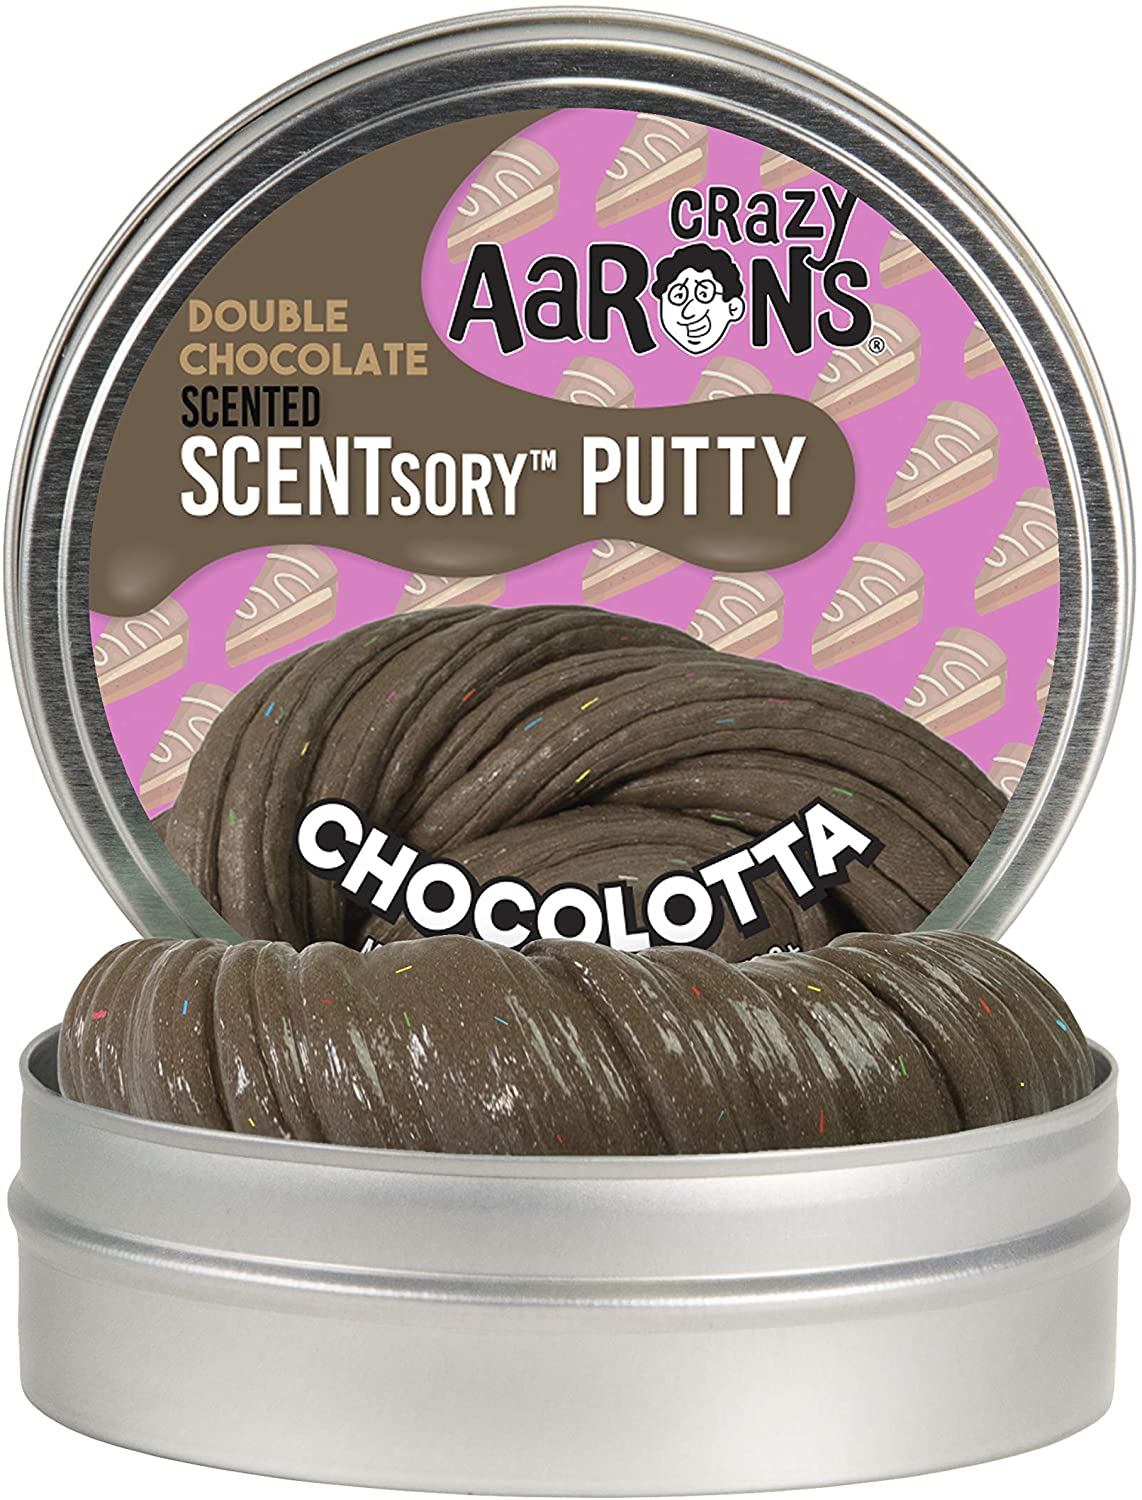 Crazy Aaron's Puttyworld - Scented Scentsory Putty